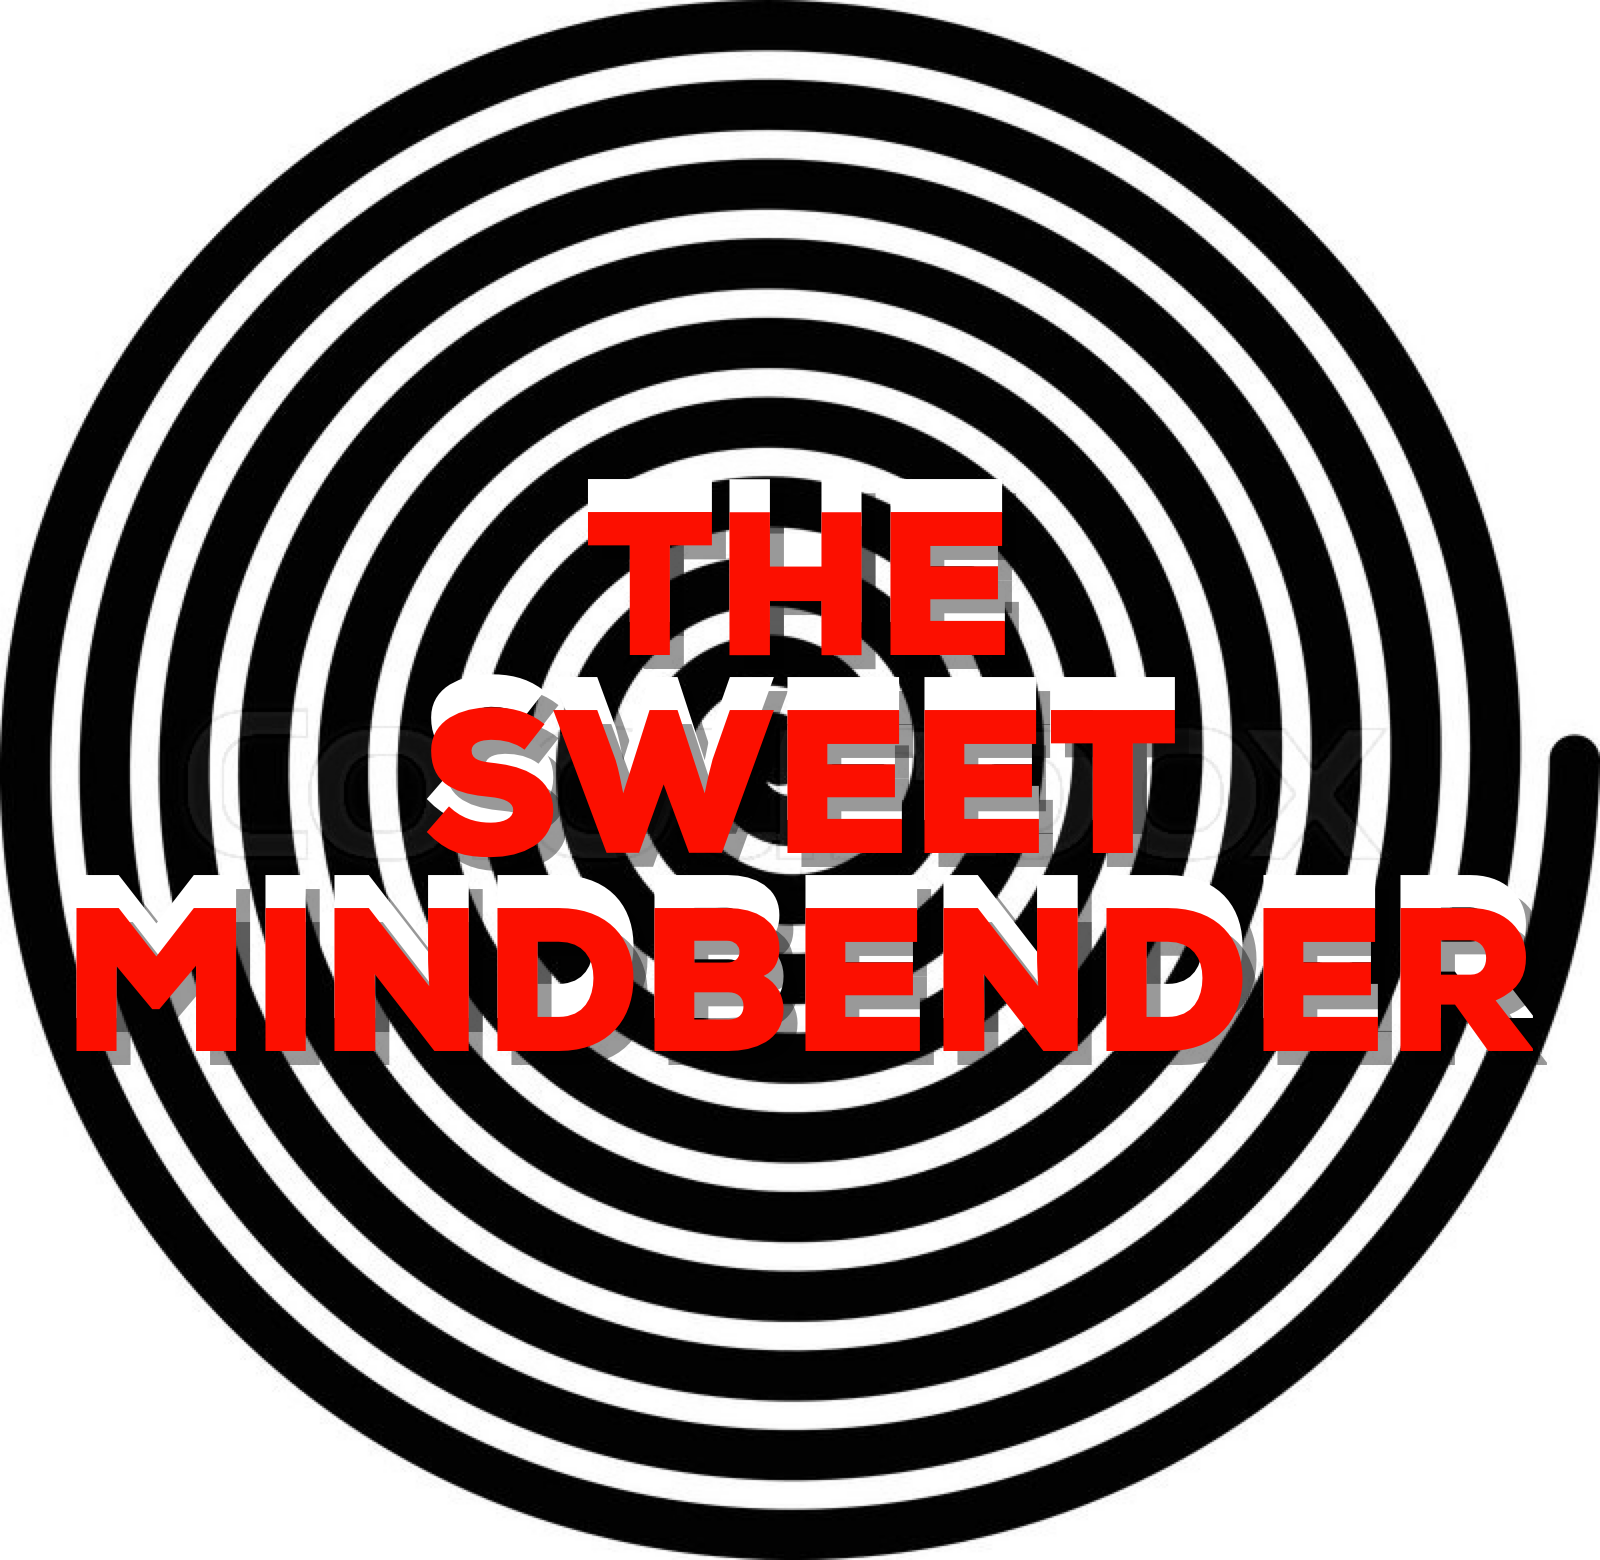 THE SWEET MINDBENDER